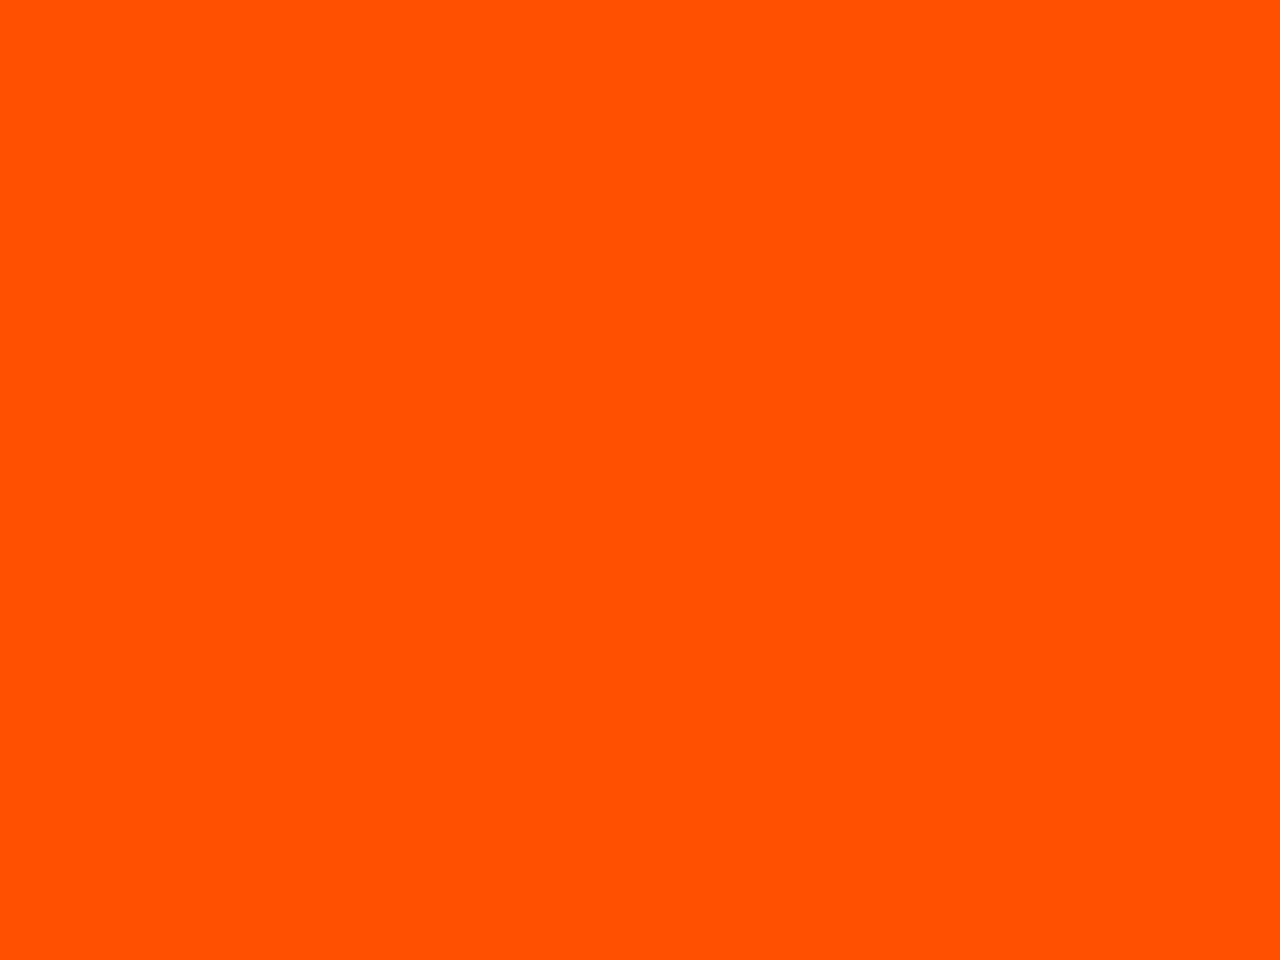 1280x960 International Orange Aerospace Solid Color Background